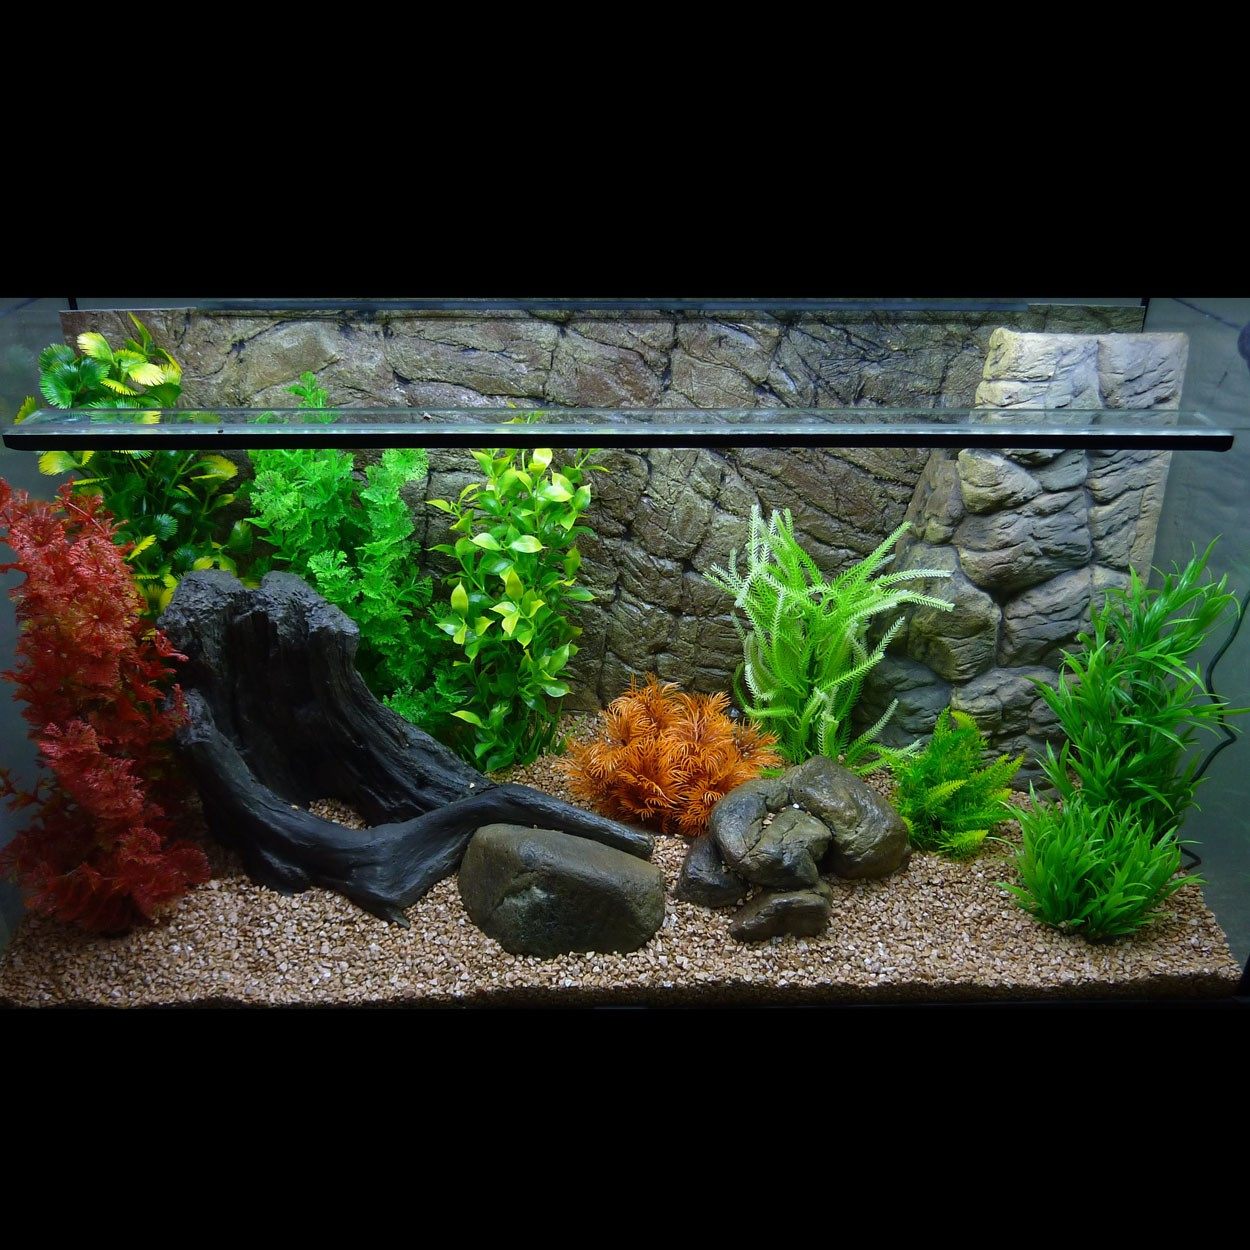 3d aquarium r ckwand f r vision 450 sd line fif aquaristik. Black Bedroom Furniture Sets. Home Design Ideas